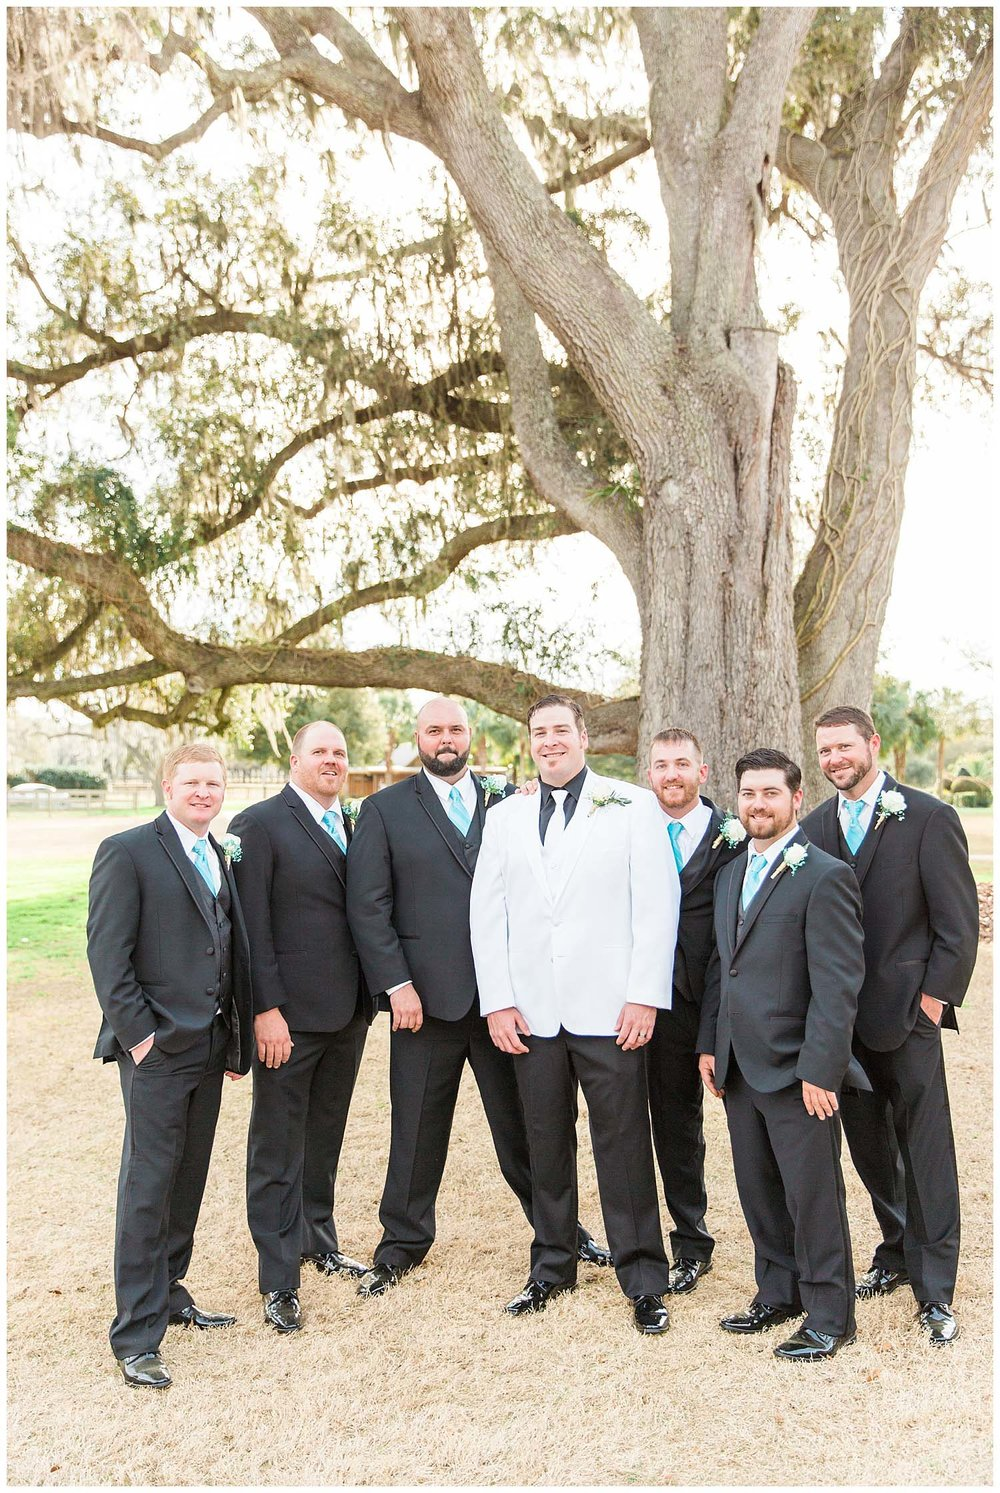 ocala-gainseville-wedding-rembert-farm-photographer-candid-lifestyle-gainseville-florida-photography-natural-rustic-bride-groom-teal_0243.jpg